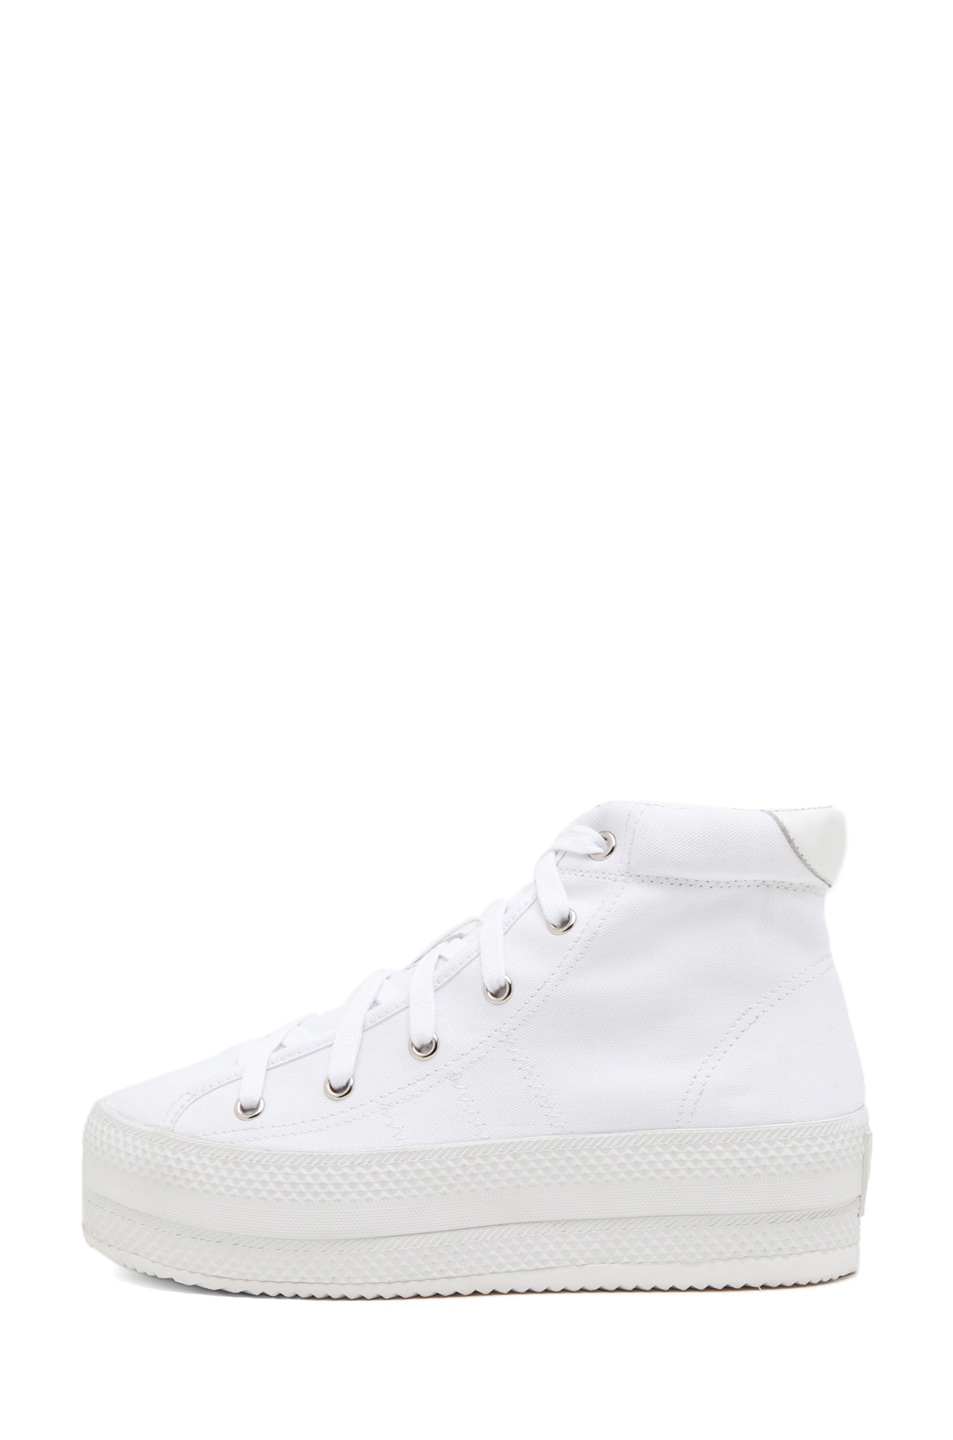 Image 1 of Chloe Sevigny for Opening Ceremony Canvas Platforms in White